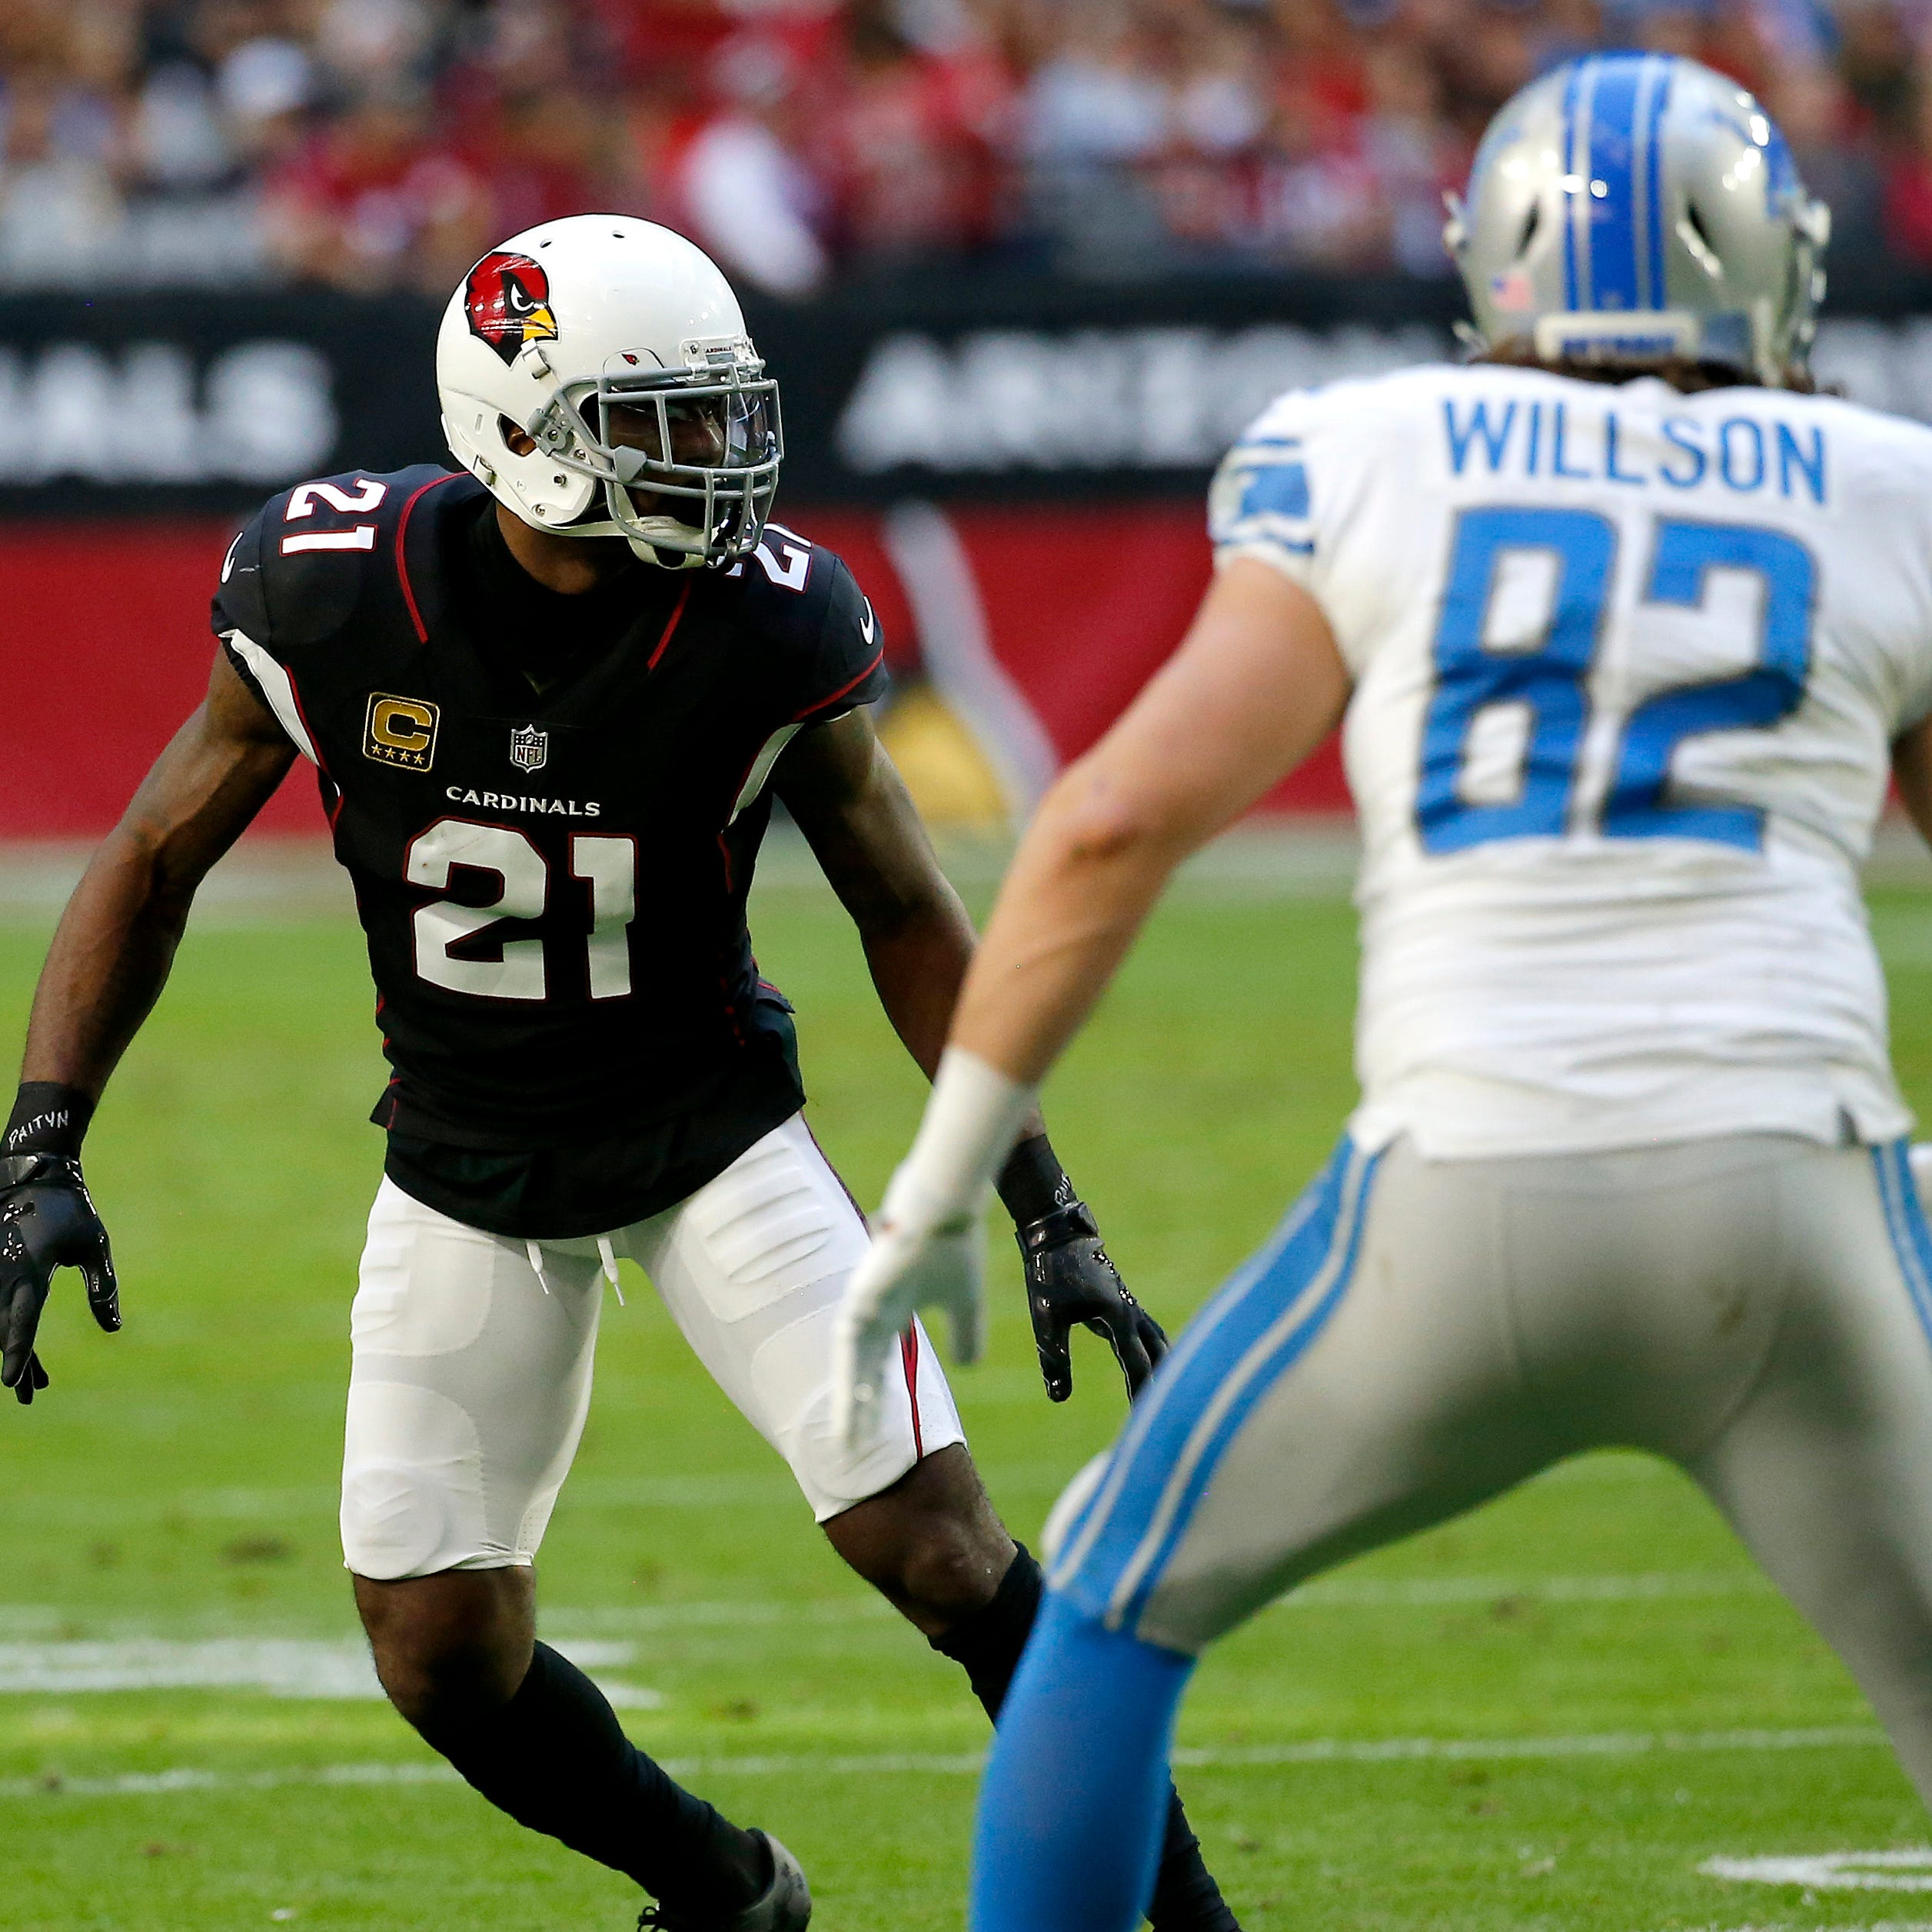 Cardinals cornerback Patrick Peterson suspended, will miss Week 1 vs. Lions